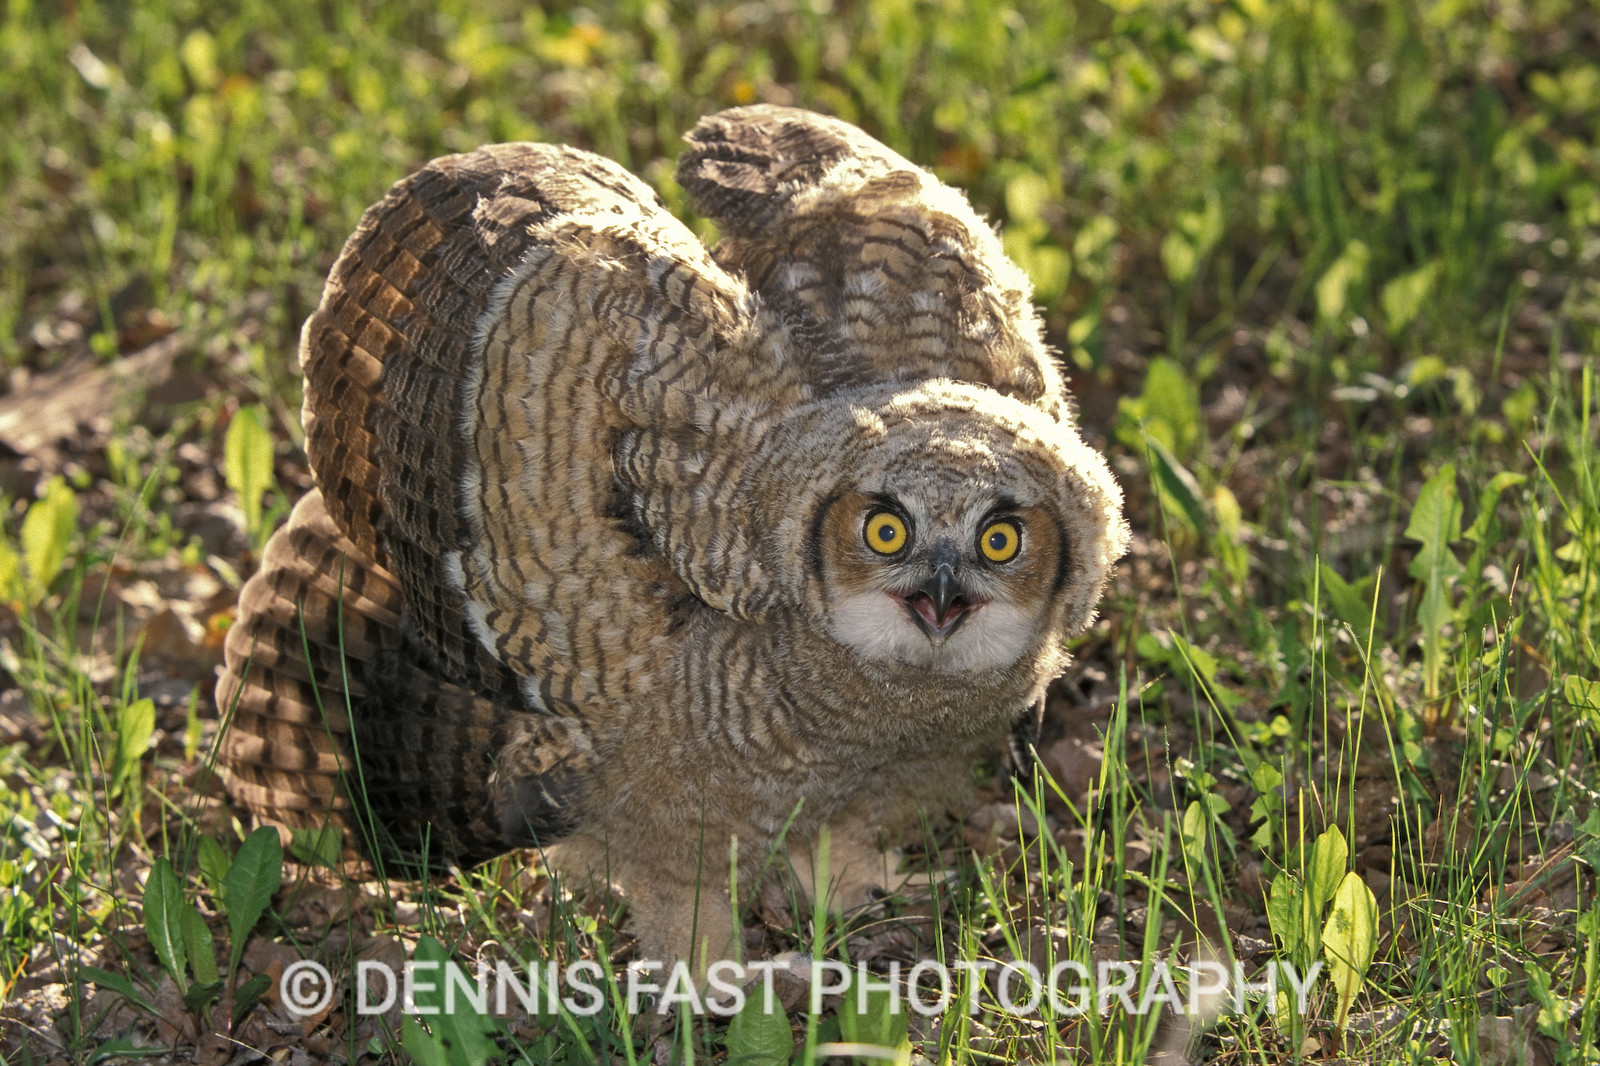 YOUNG GREAT HORNED OWL  Young owls out of the nest are able to fly short distances, but they will frequently stand and puff themselves up to make themselves appear larger. All the hissing and bill clacking can be intimidating, but the real weapons to look out for are their talons.